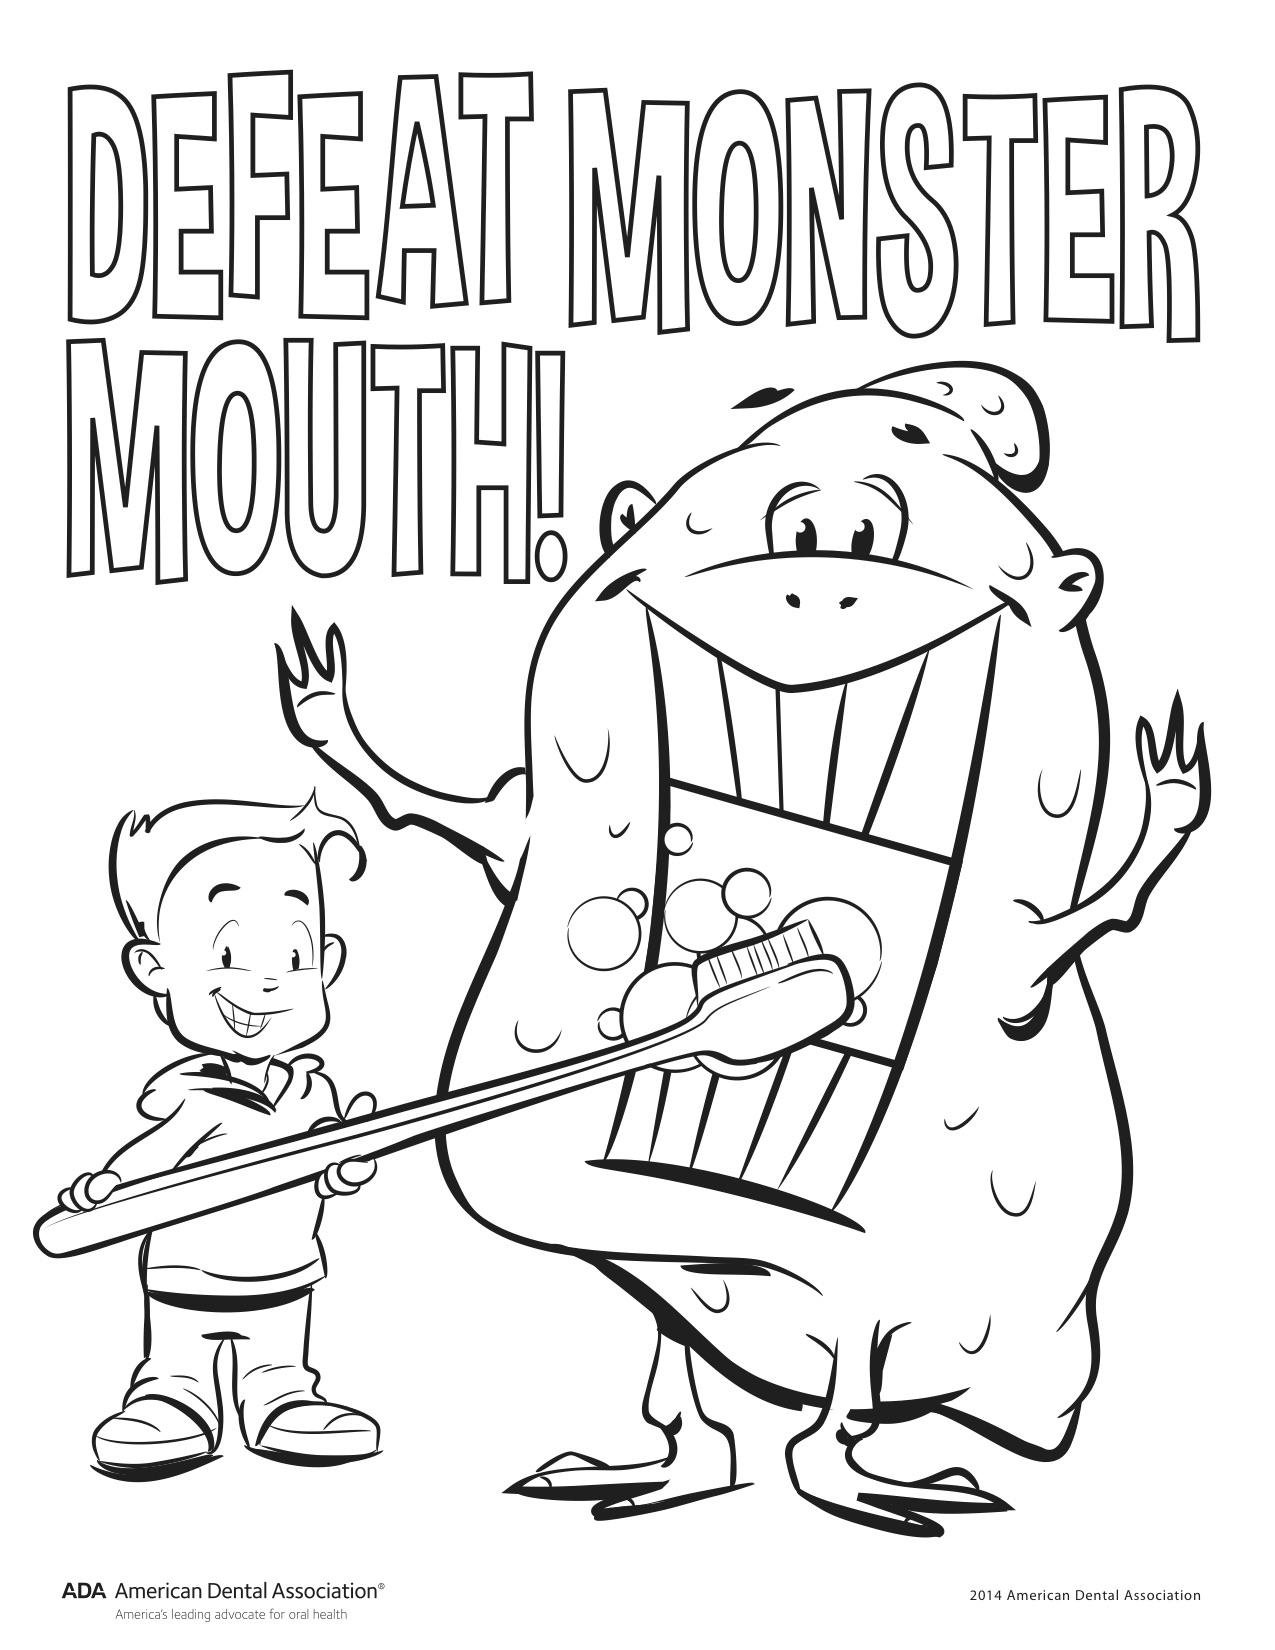 This Childrensdentalhealthmonth Defeat Monster Mouth By